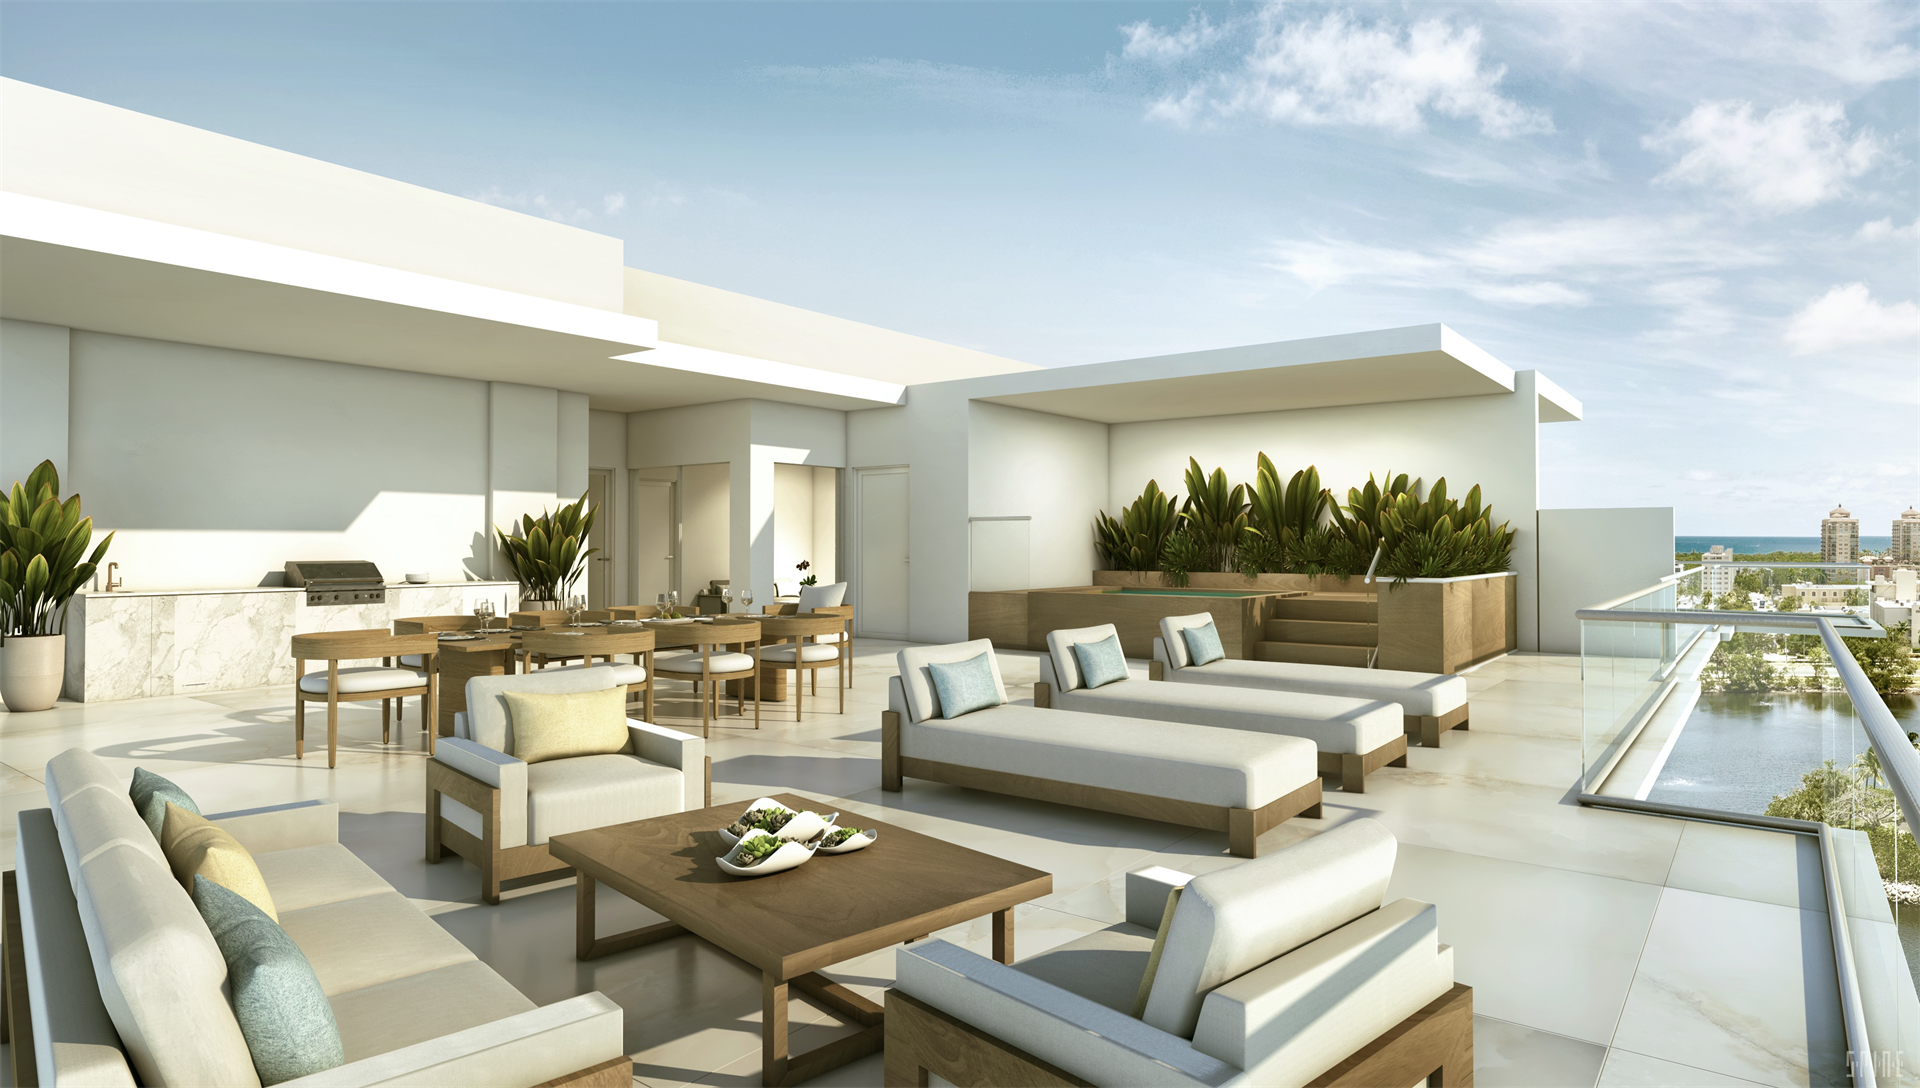 32. Riva Residences Fort Lauderdale building at 1180 North Federal Highway, Fort Lauderdale, FL 33304